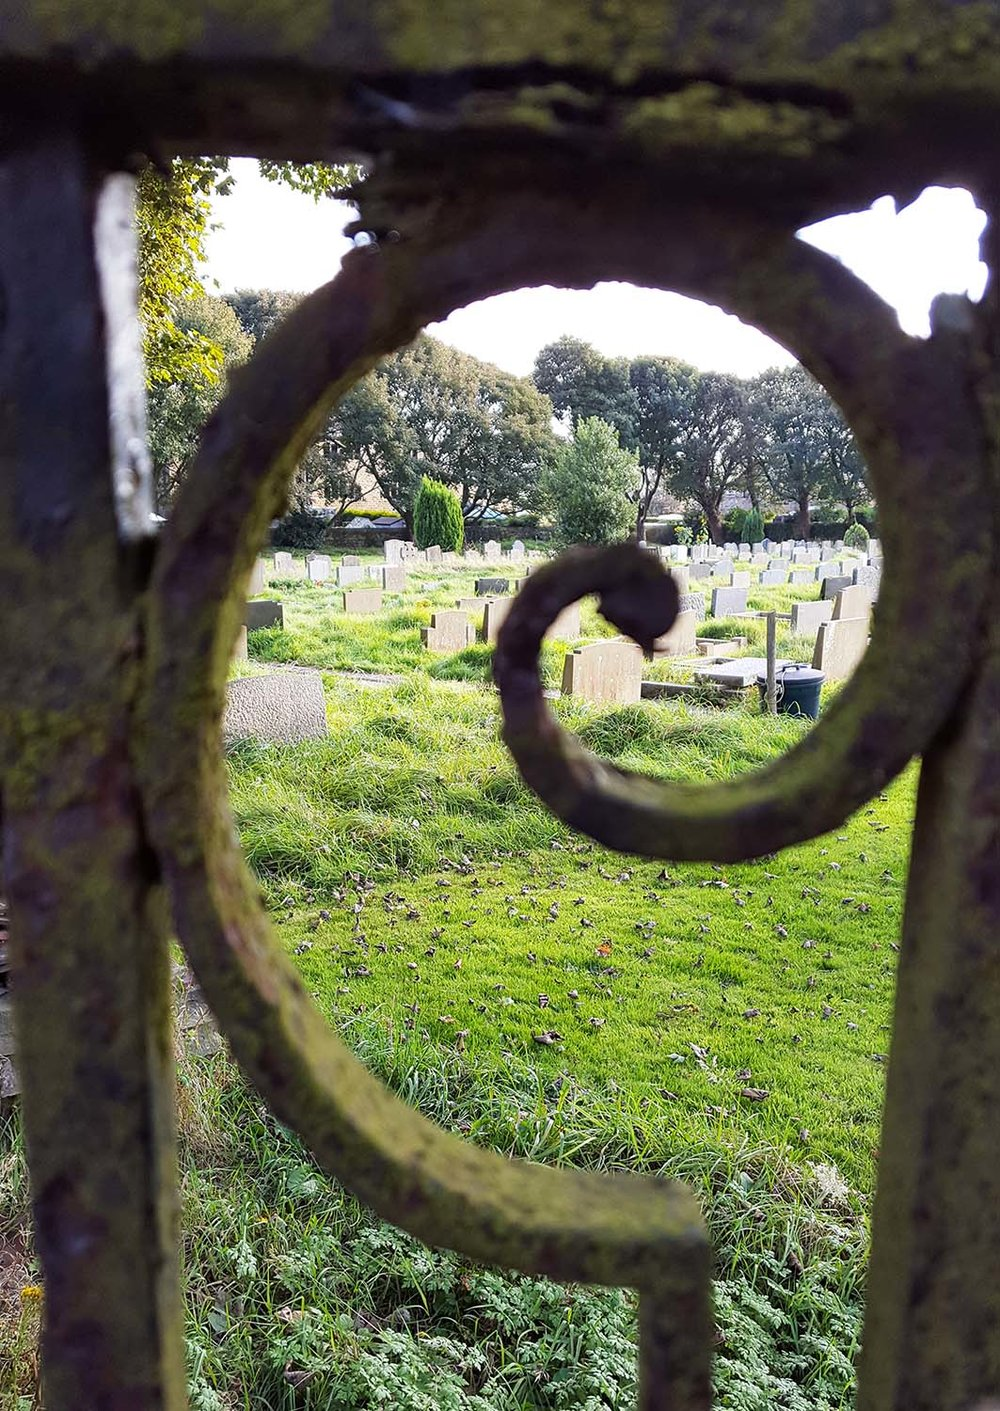 View through the gate to the graveyard where Sylvia Plath is buried